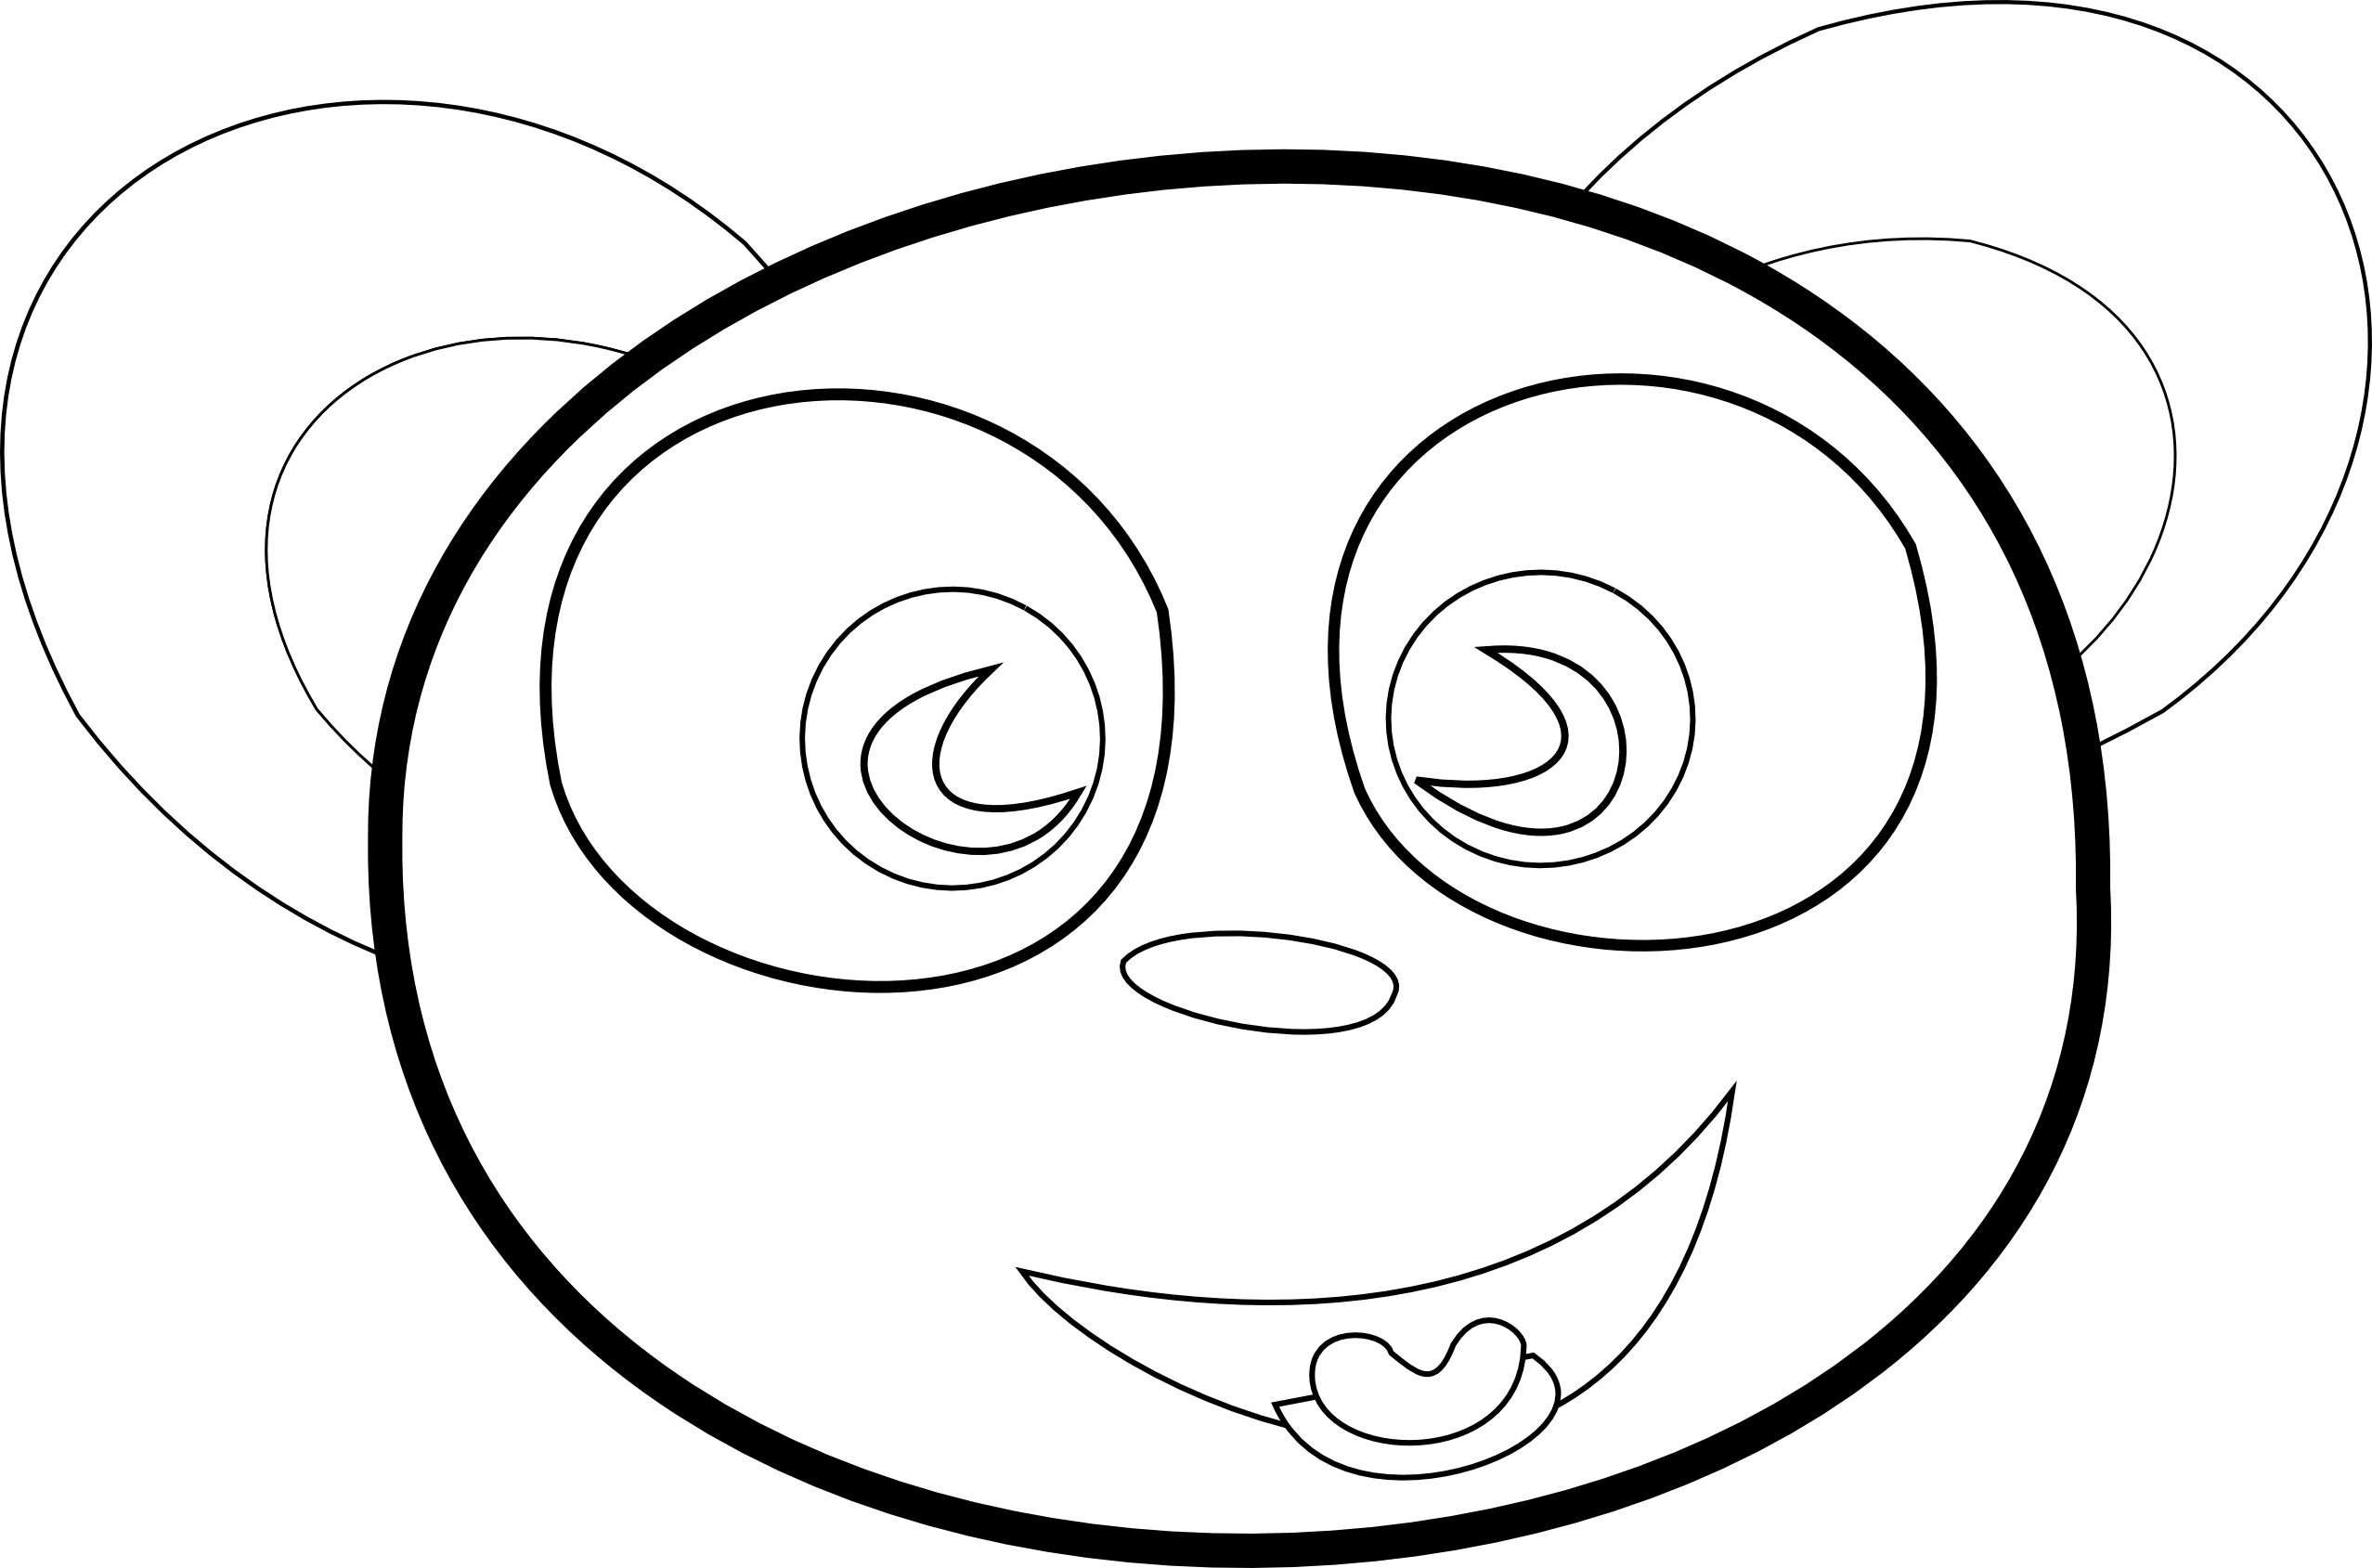 Line Drawing Of Bear Face : Bear face line drawing